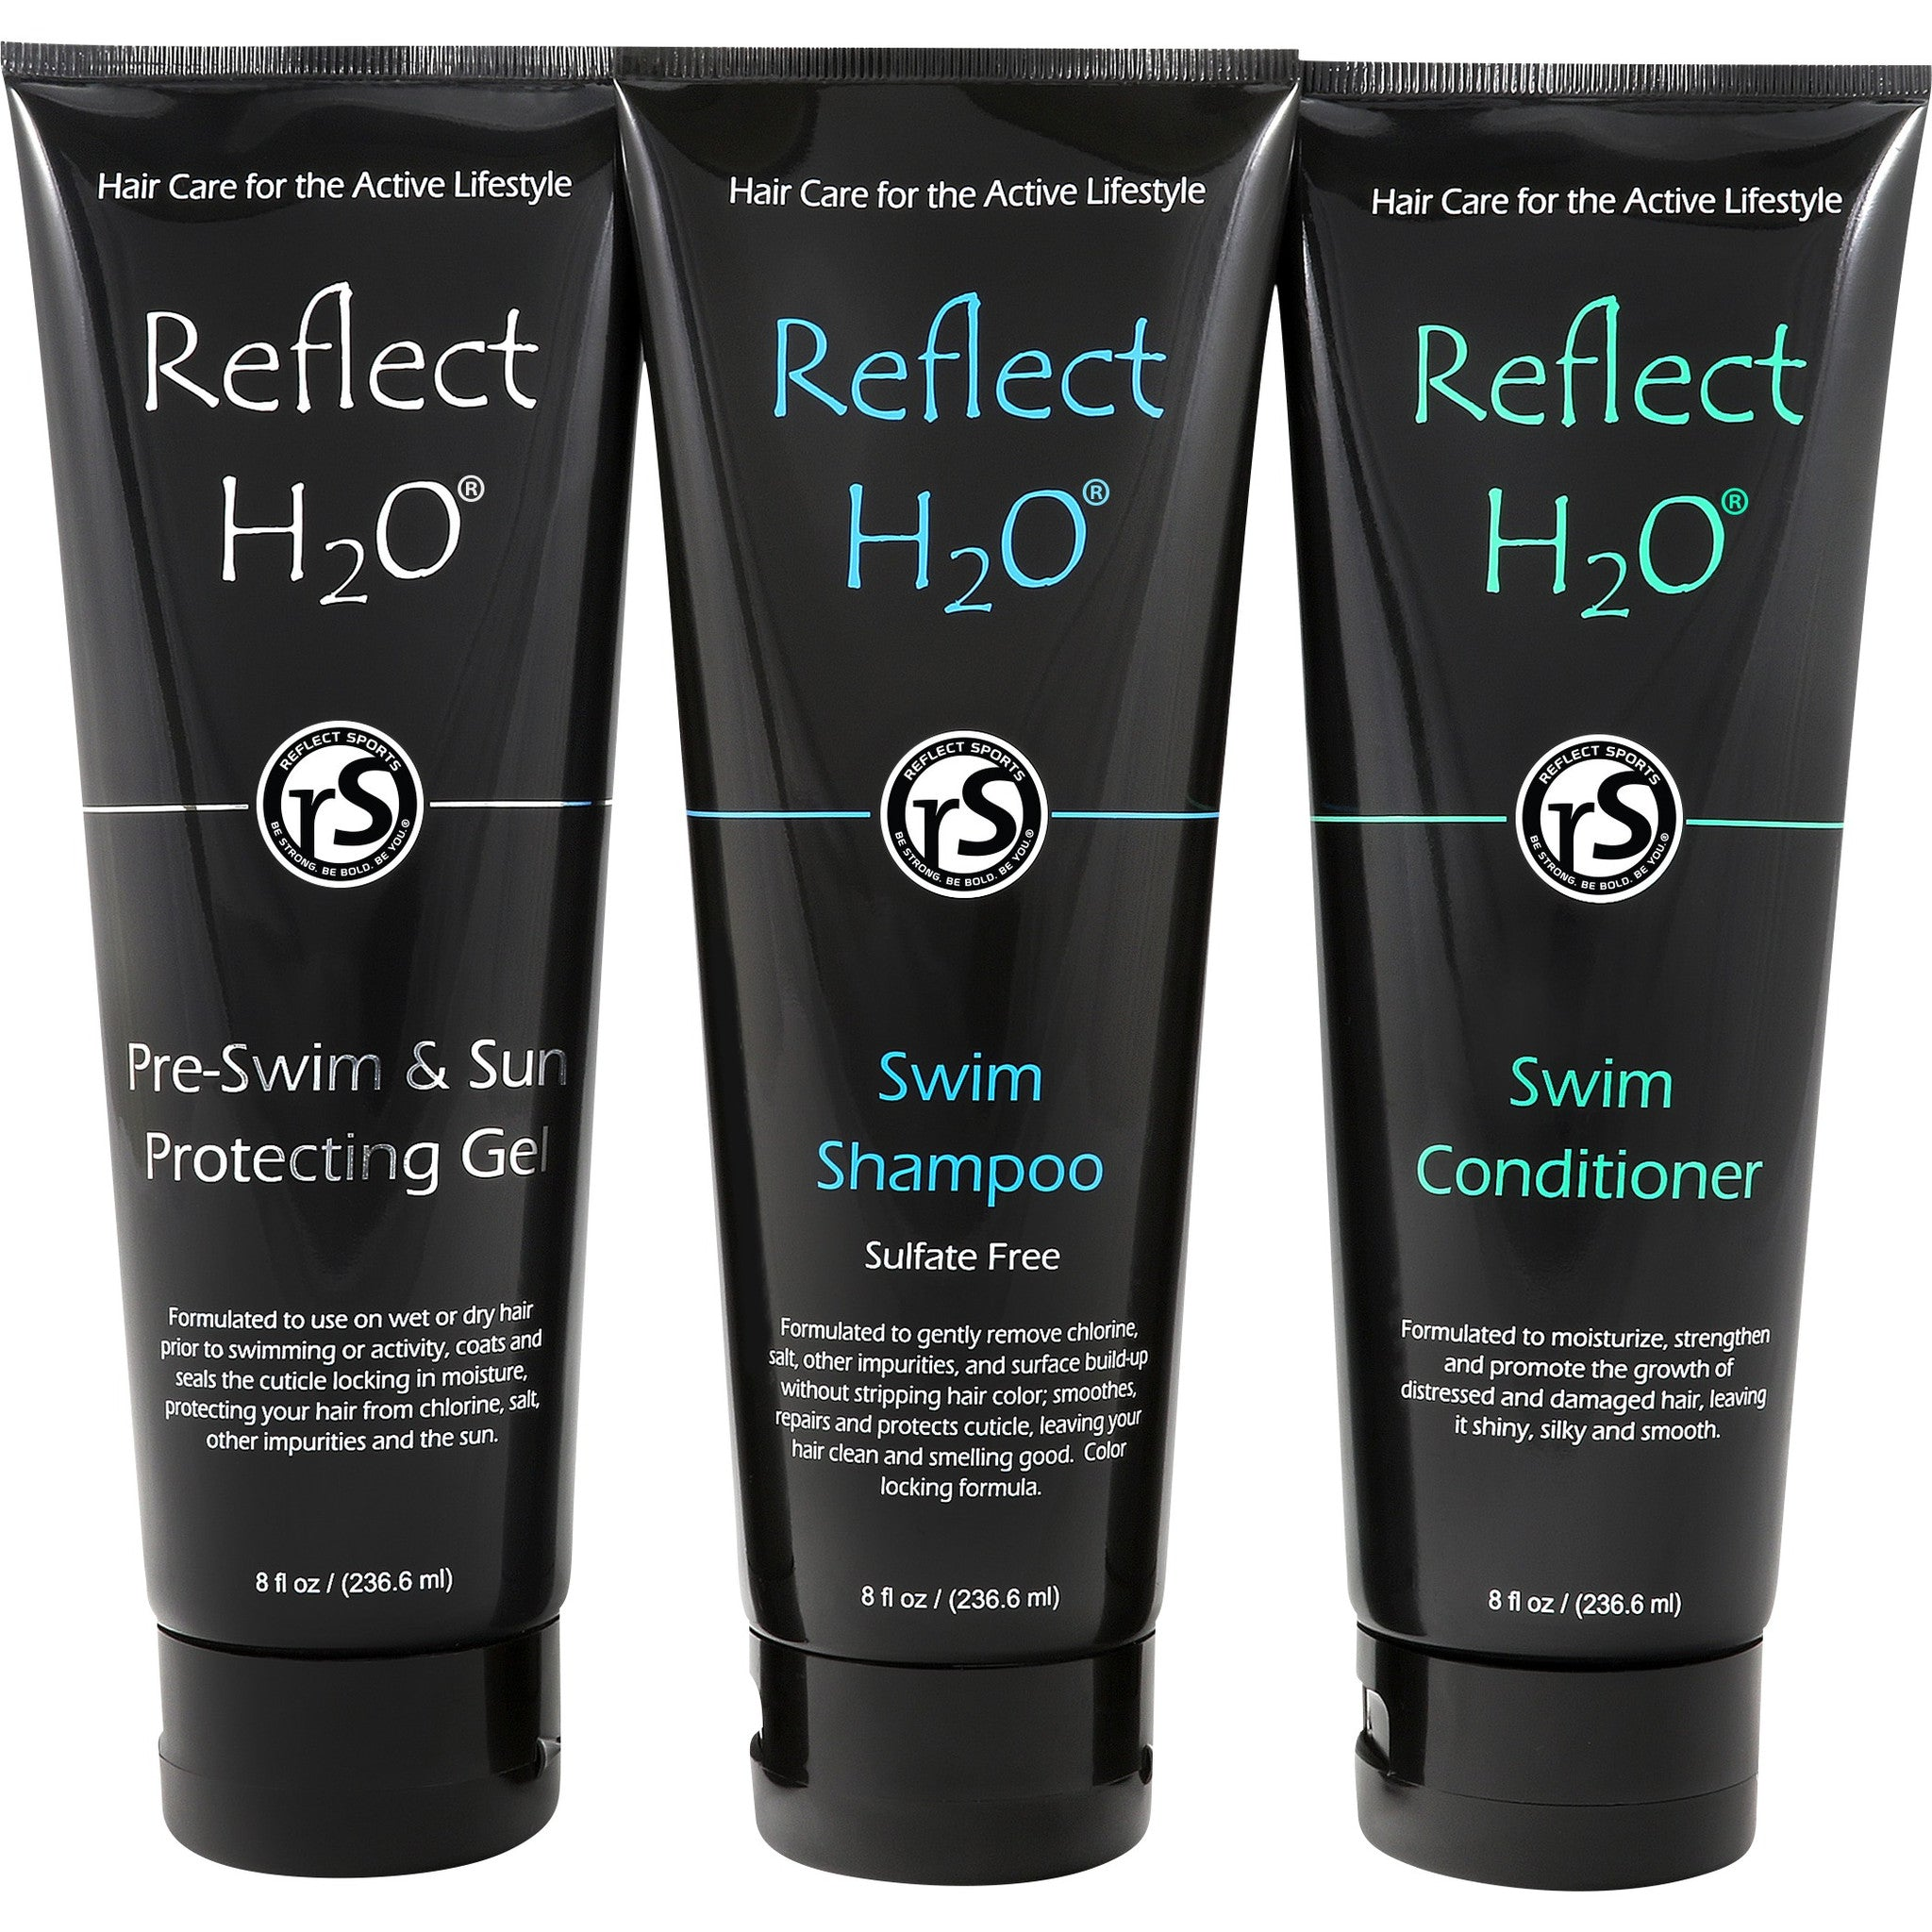 Swimmer's Shampoo, Swimming Conditioner and Pre-Swimming & Sun Protecting Gel